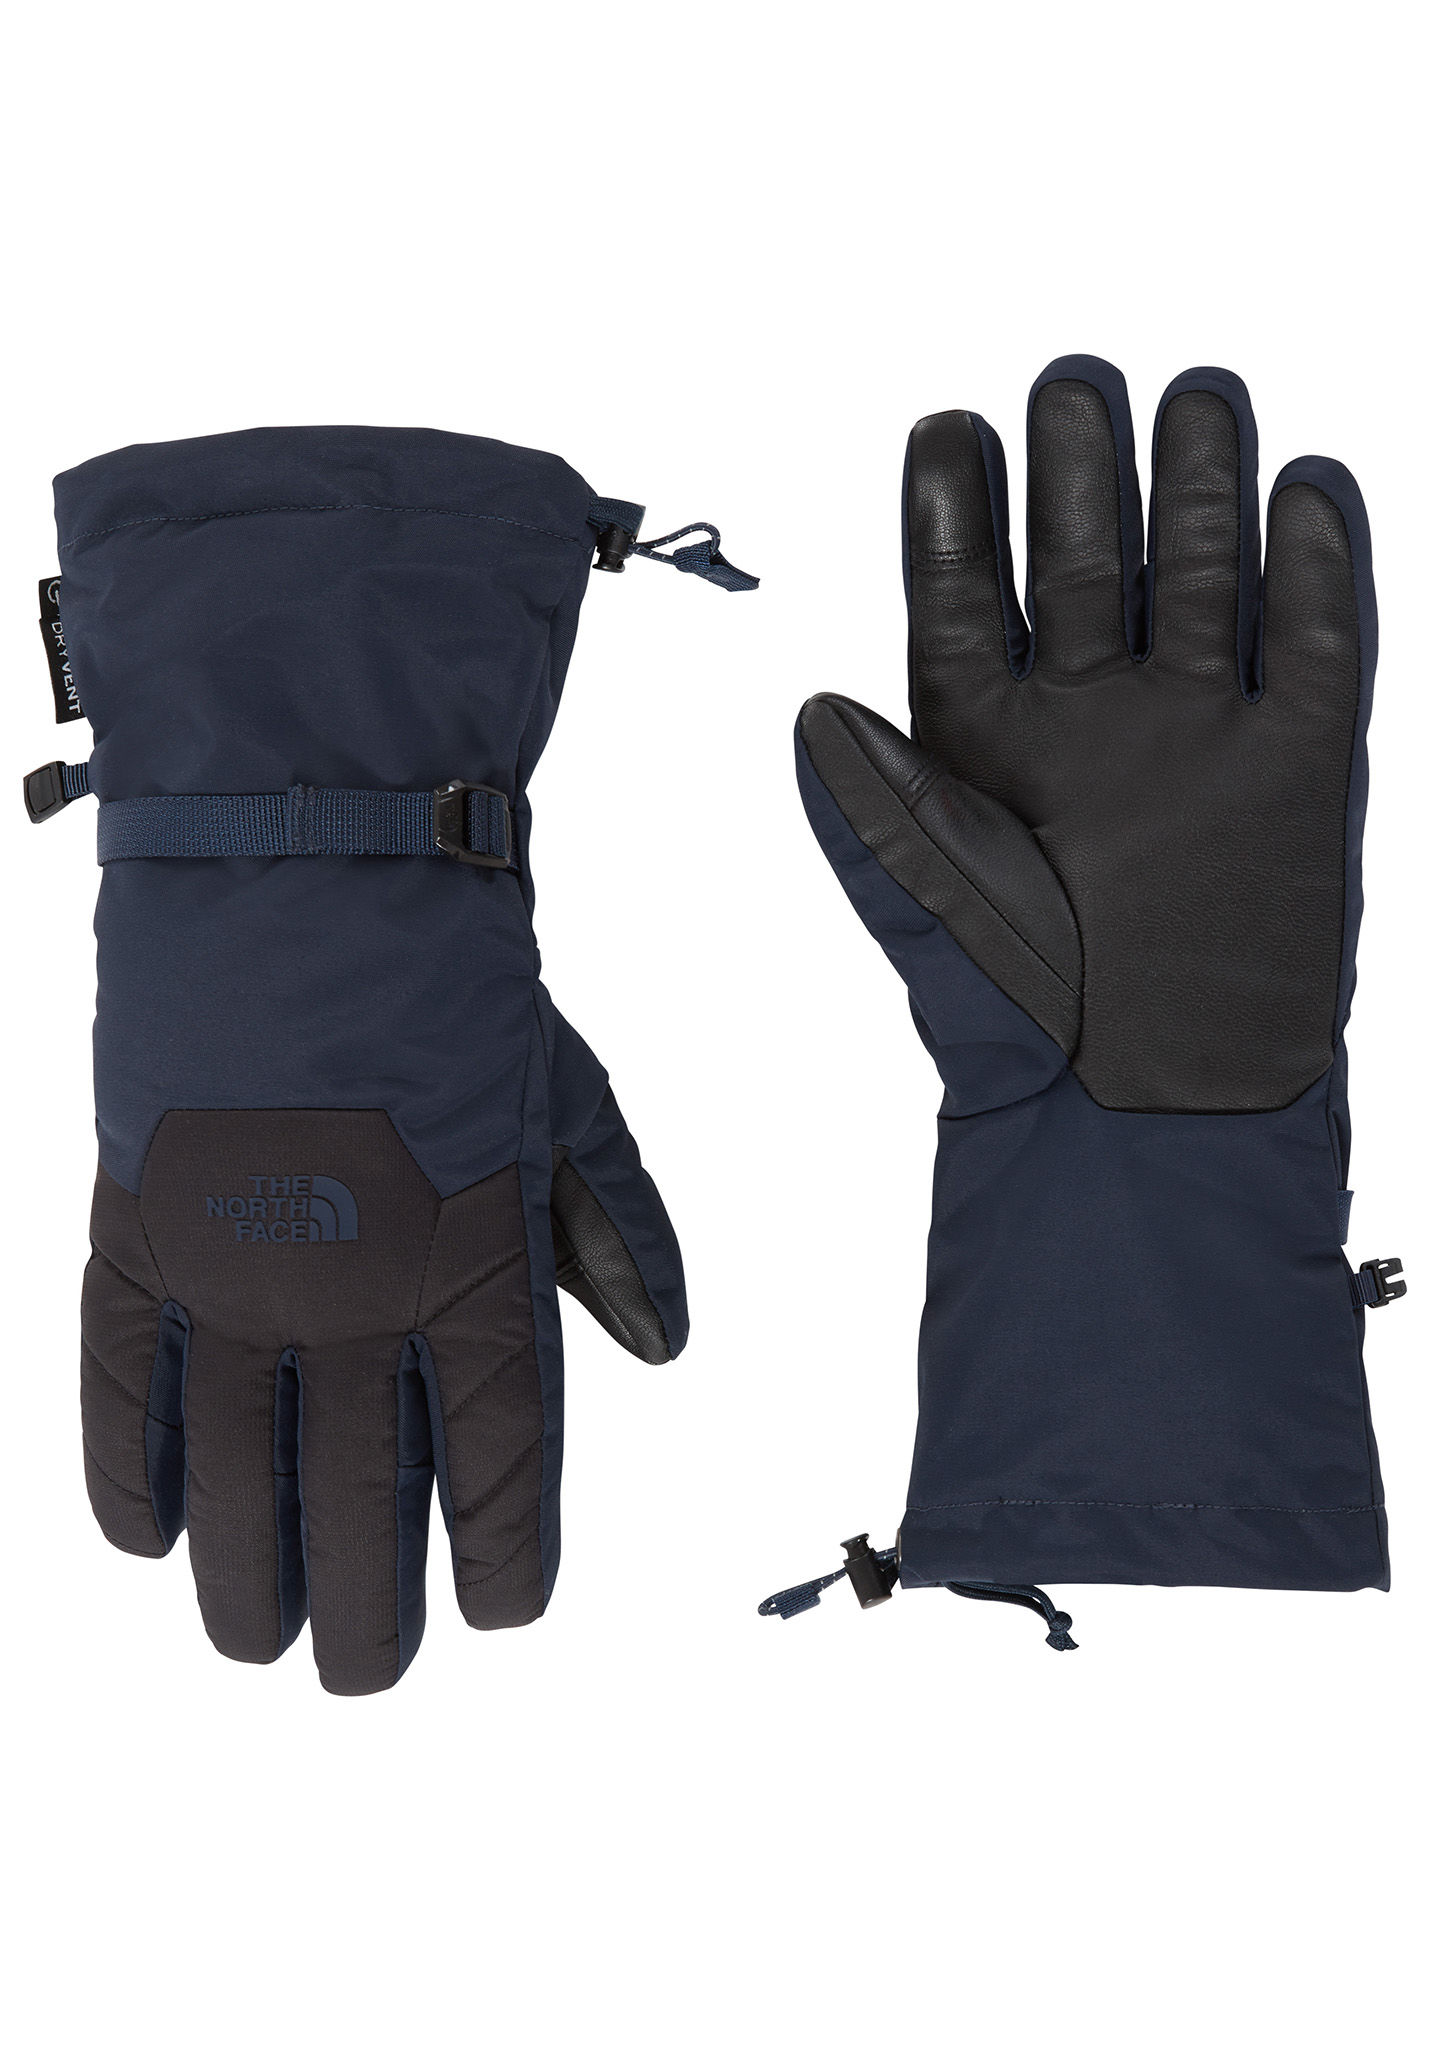 a10826938 THE NORTH FACE Revelstoke Etip - Snowboard Gloves - Blue